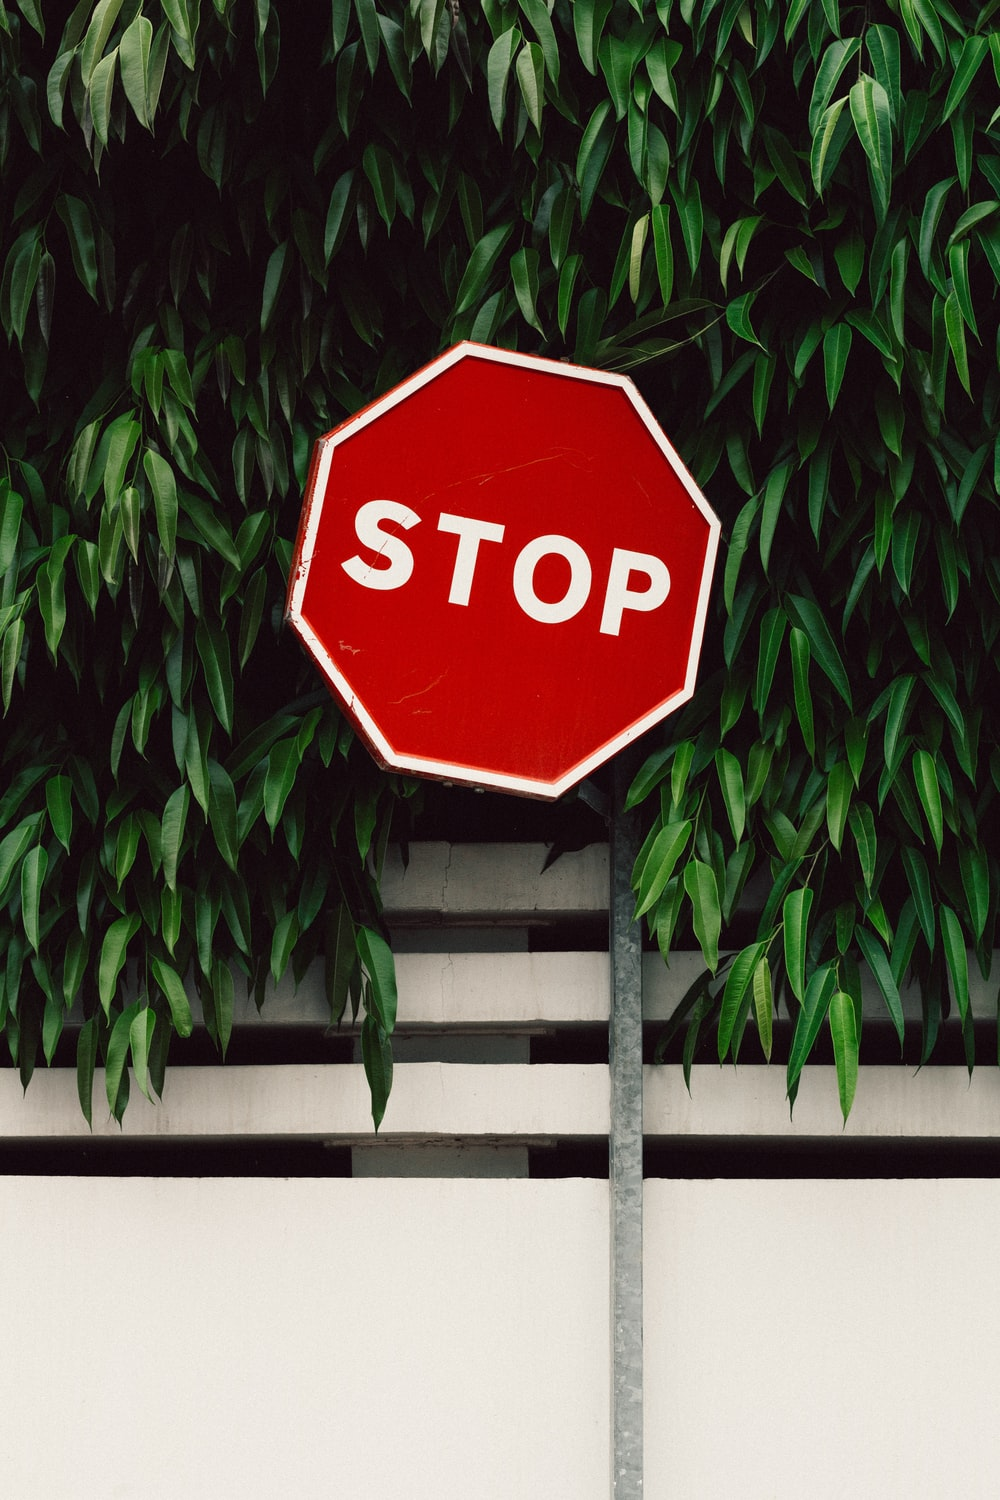 red and white Stop road sign near green tree